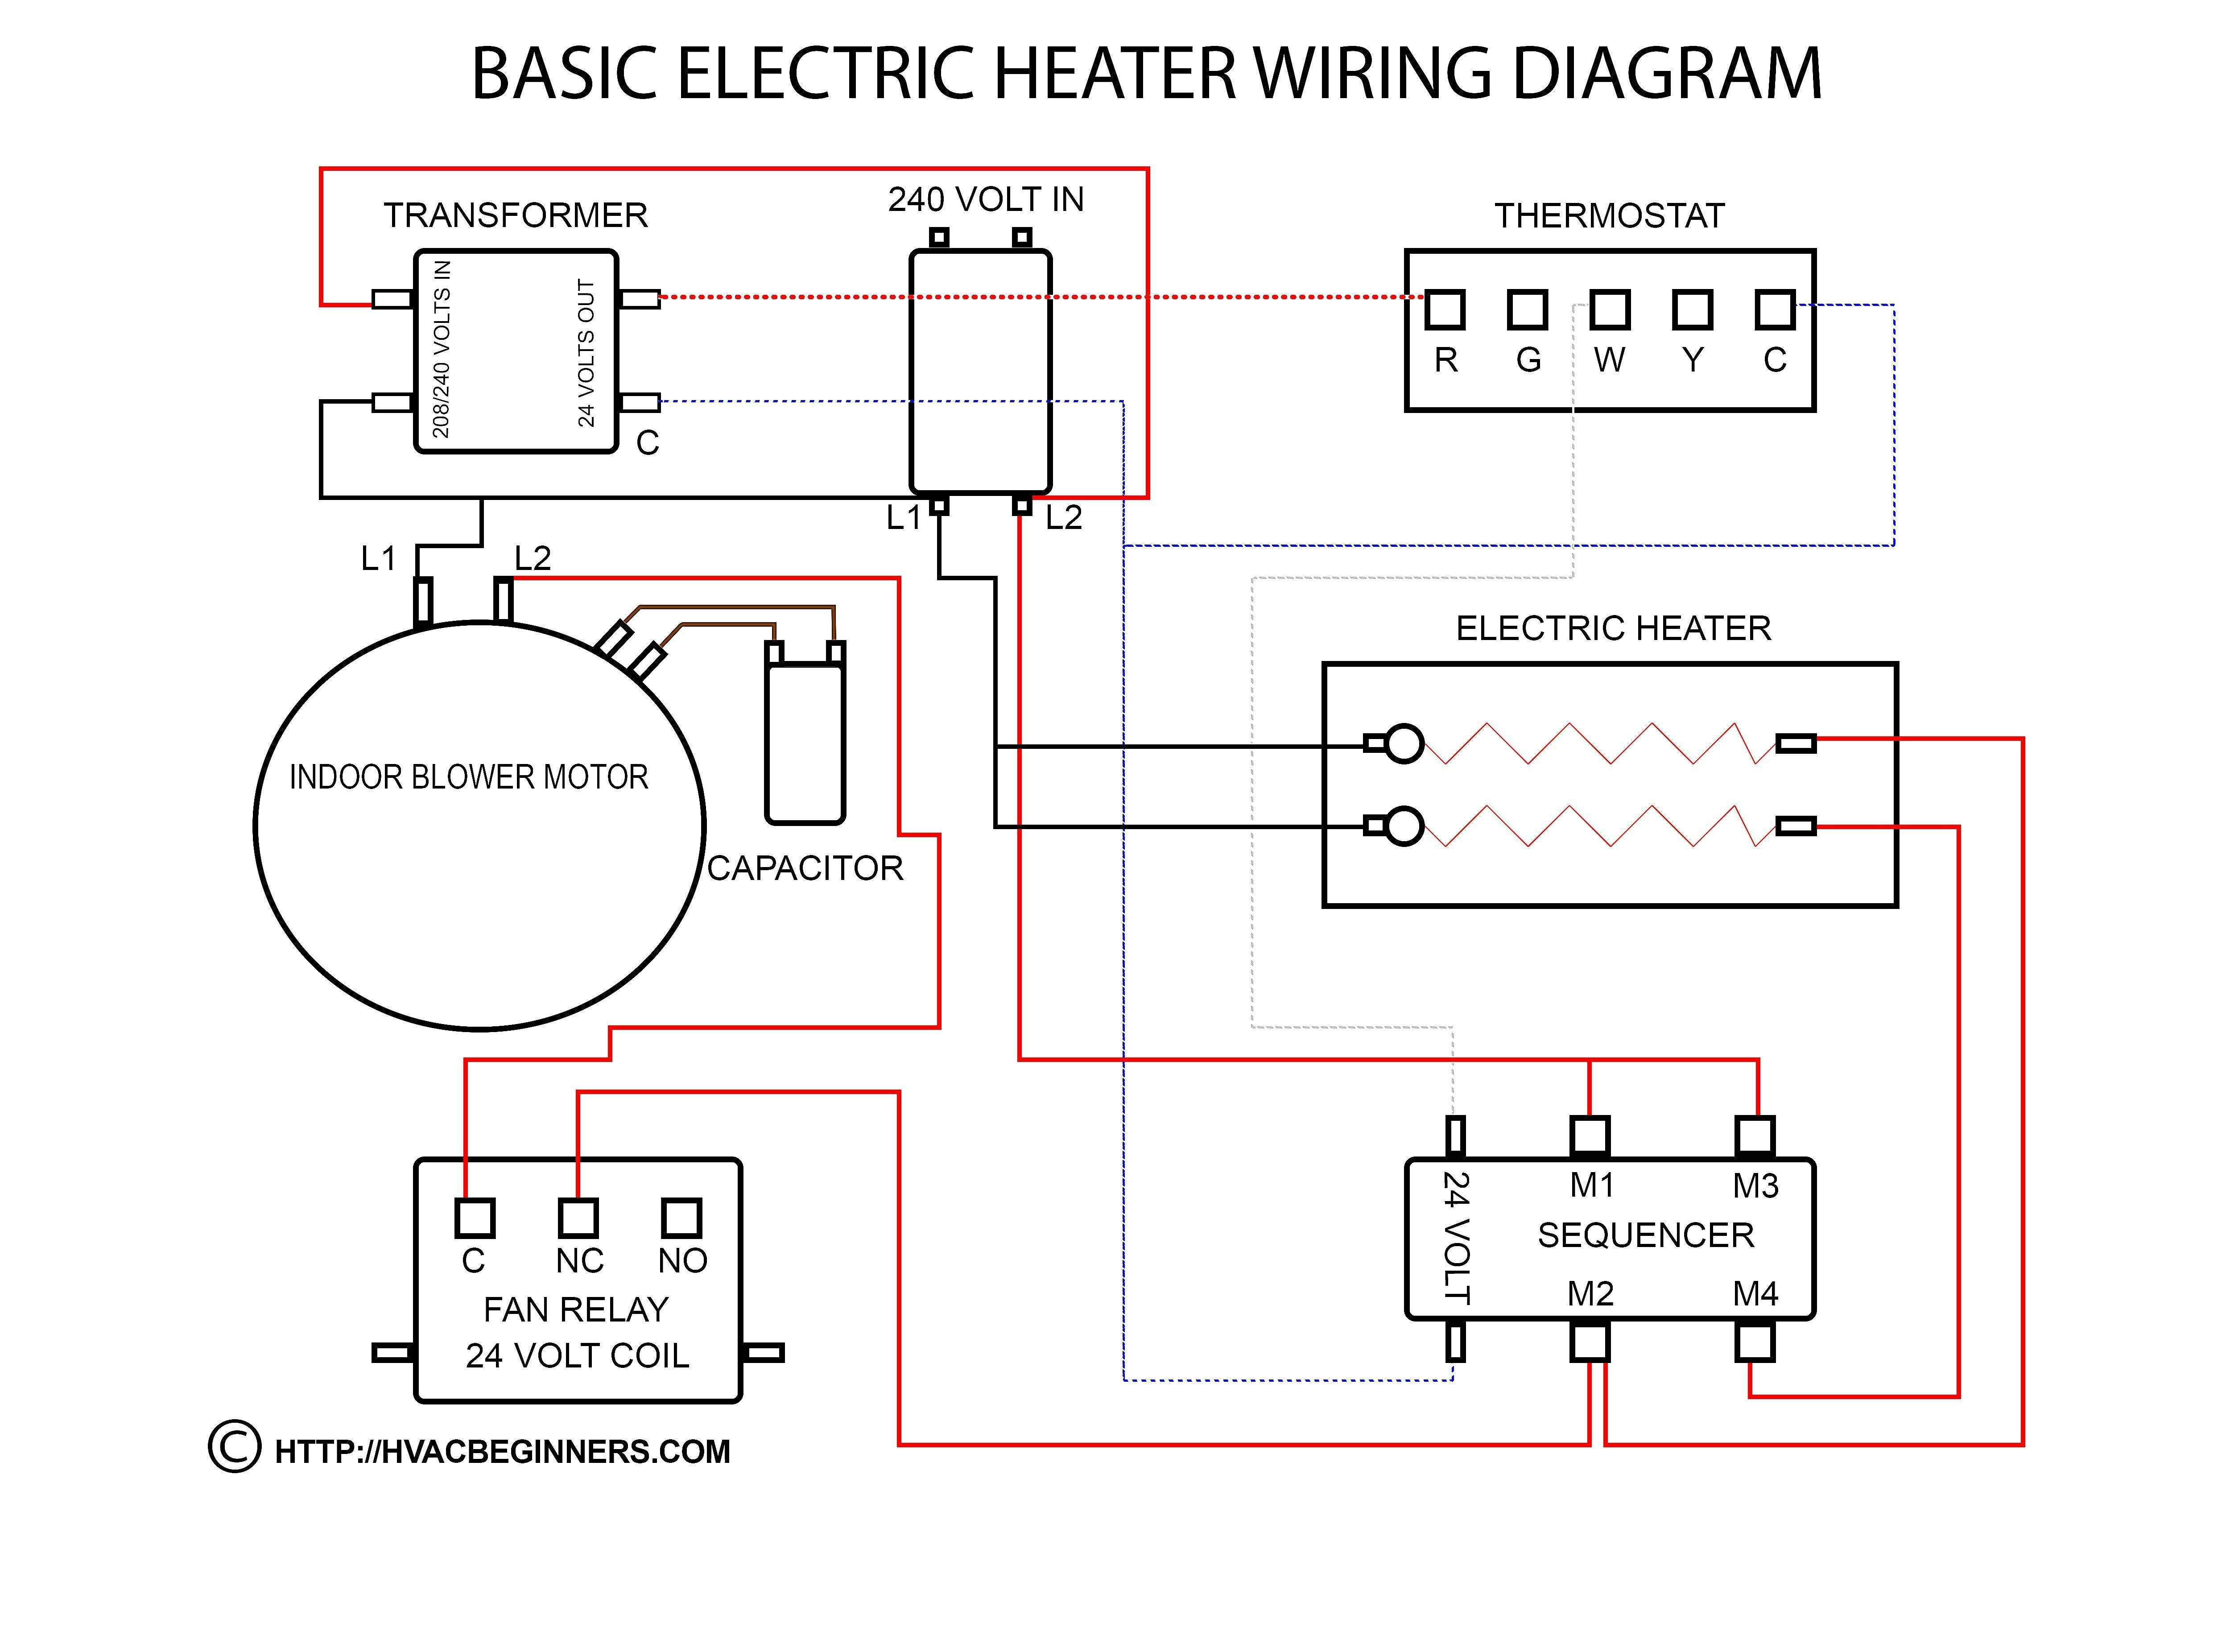 solar wiring diagram Download-Solar Panel Wiring Diagram Example New Wiring Diagram for Trailer Valid Http Wikidiyfaqorguk 0 0d 2-n